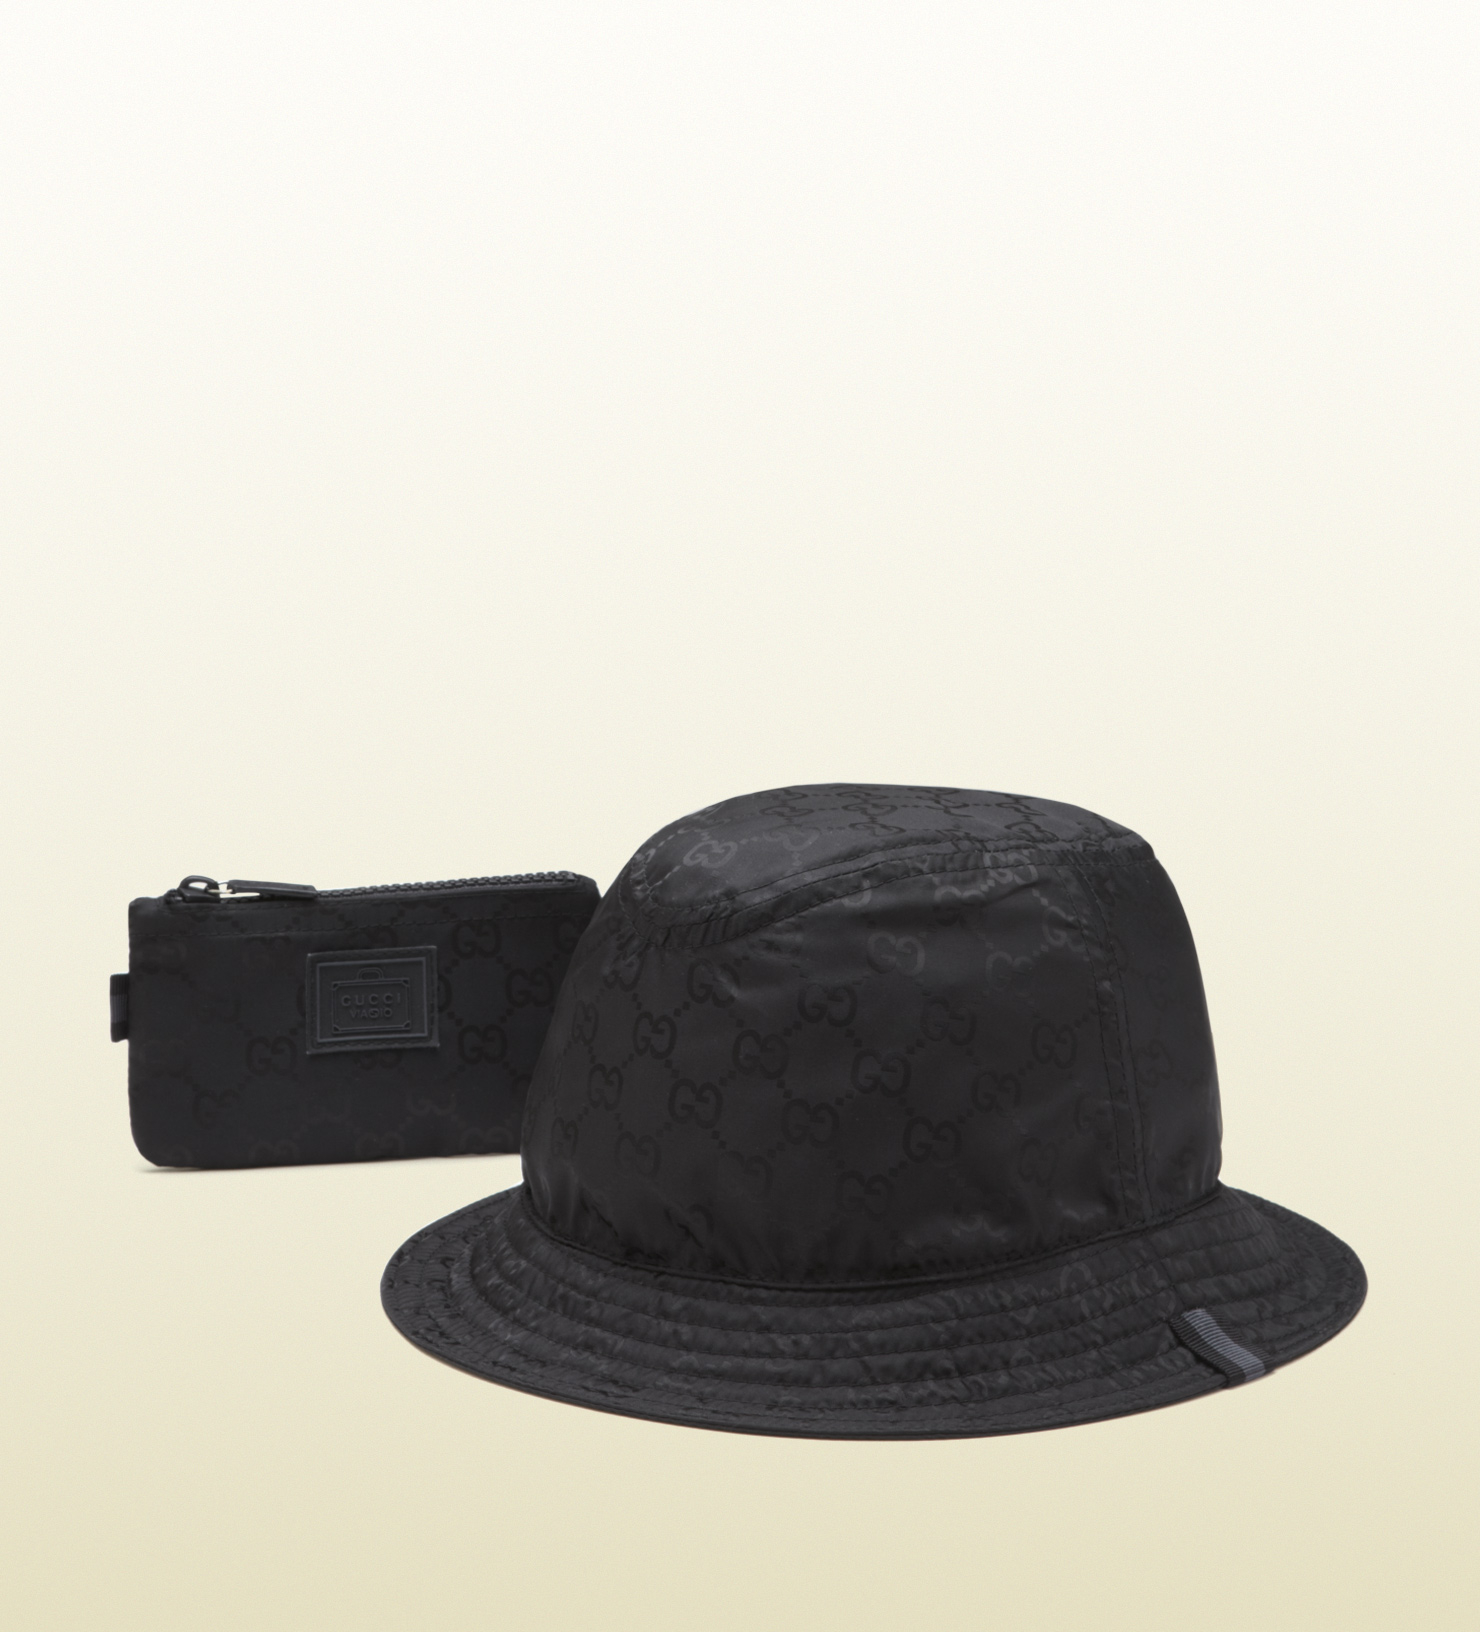 e8acb6c926a Lyst gucci mens black nylon hat from viaggio collection in black jpg  1480x1632 Gucci hats for